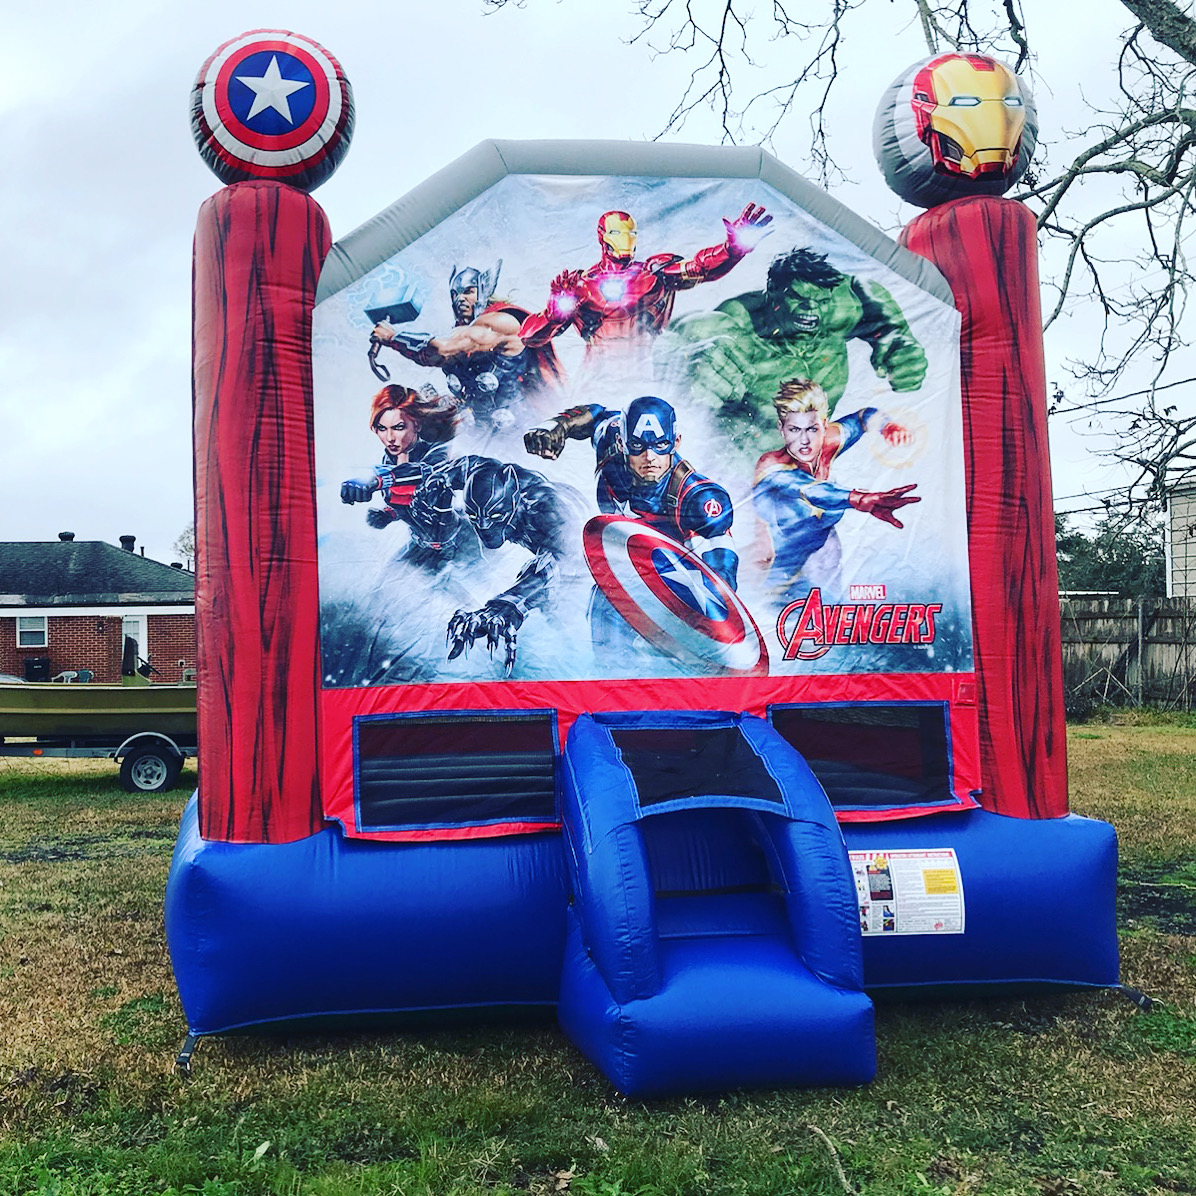 Avengers Bounce house rental